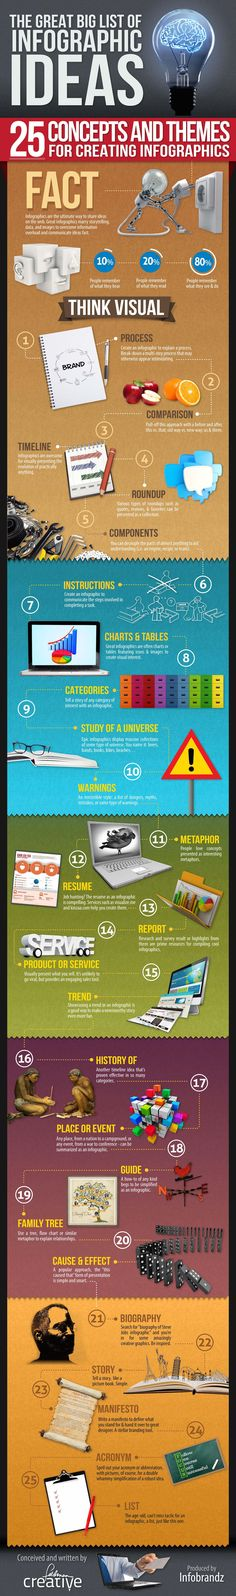 The Great Big List of Infographic Ideas [INFOGRAPHIC] - @socialmedia2day